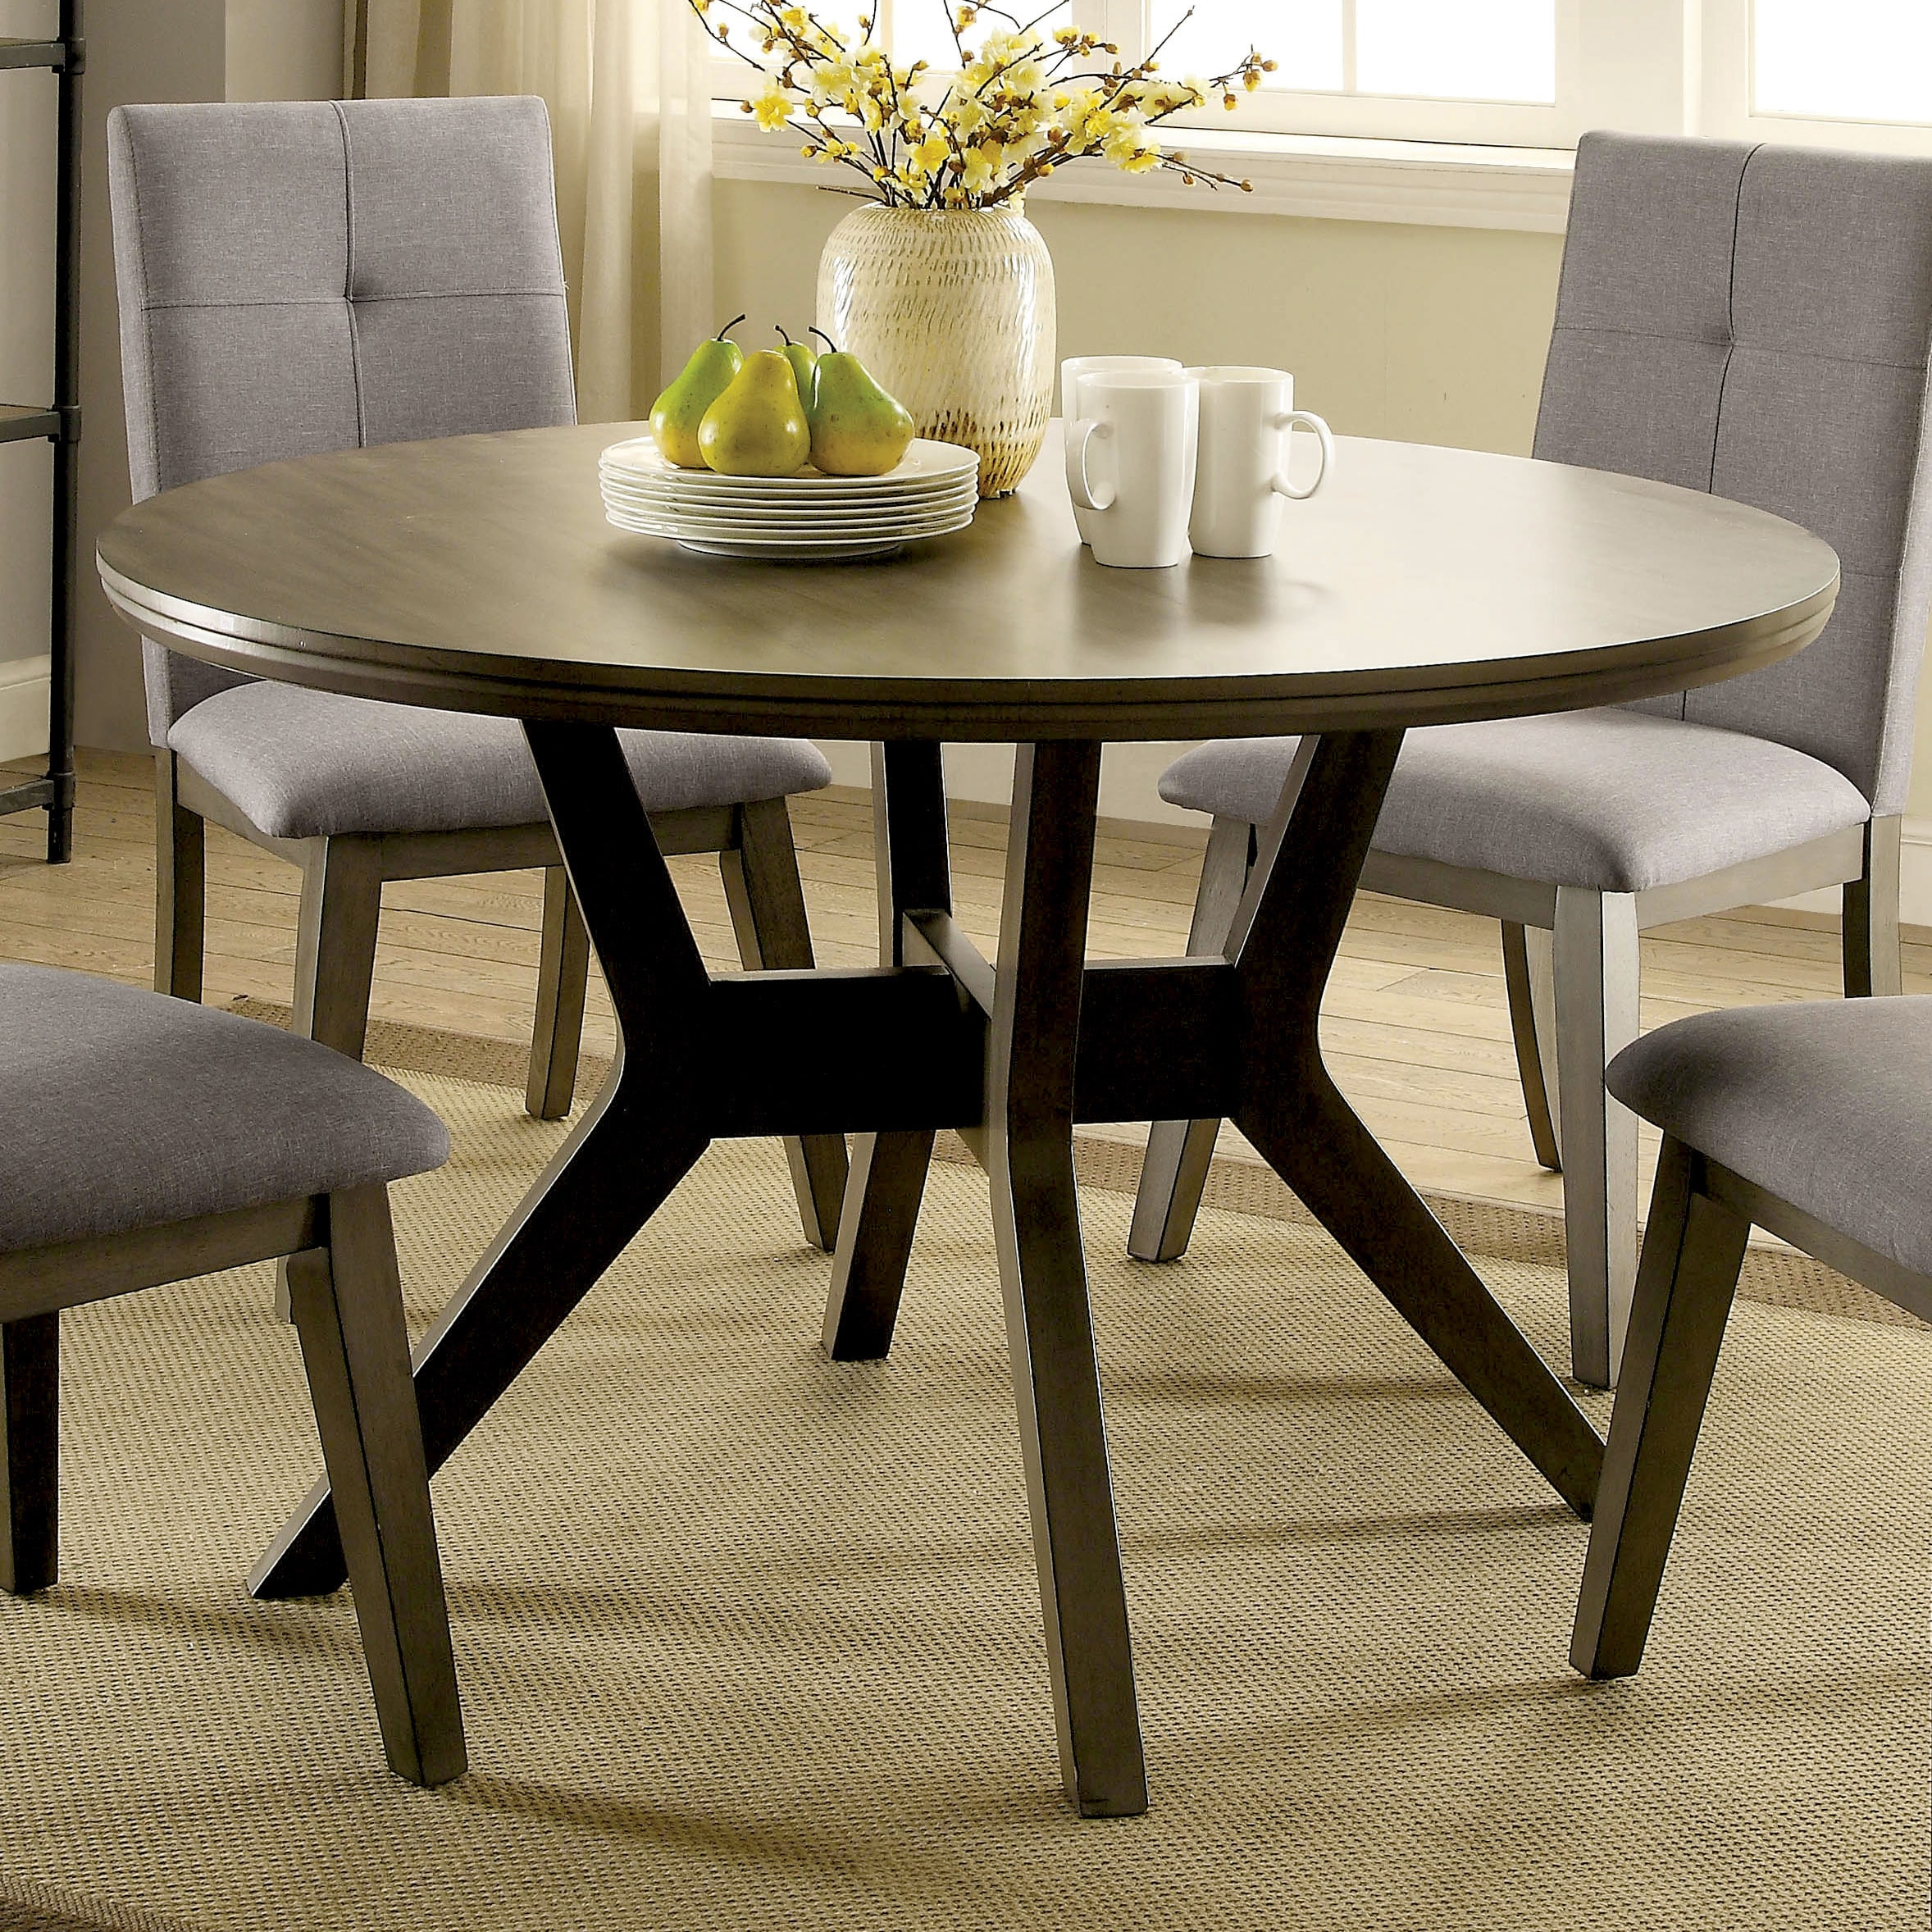 055efce4991e9 Shop Furniture of America Remi Mid-Century Modern Angular Grey Round Dining  Table - On Sale - Free Shipping Today - Overstock - 14366222